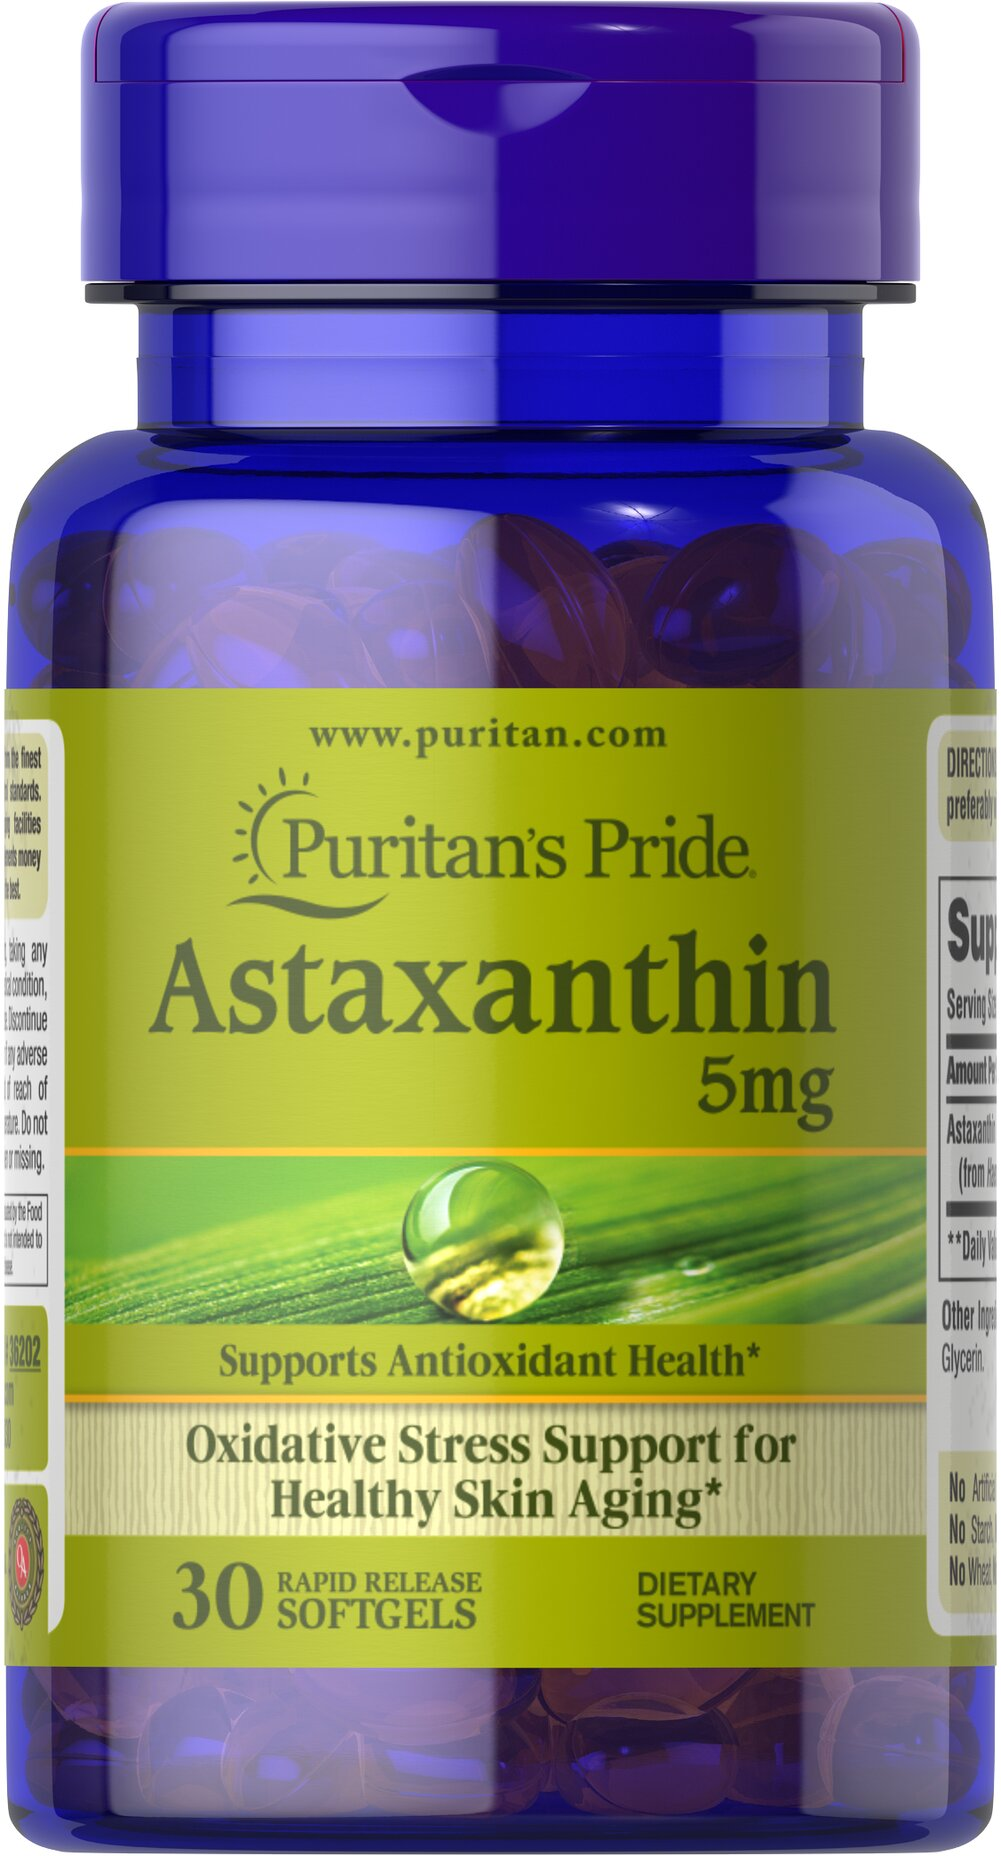 Astaxanthin 5 mg <p>Powerful Antioxidant**</p>  <p>Suited for Stressful Lifestyles**</p>    <p>Astaxanthin promotes antioxidant health, which helps fight the cell damaging free radicals that can lead to oxidative stress which may contribute to the premature aging of cells.**</p> 30 Softgels 5 mg $16.99